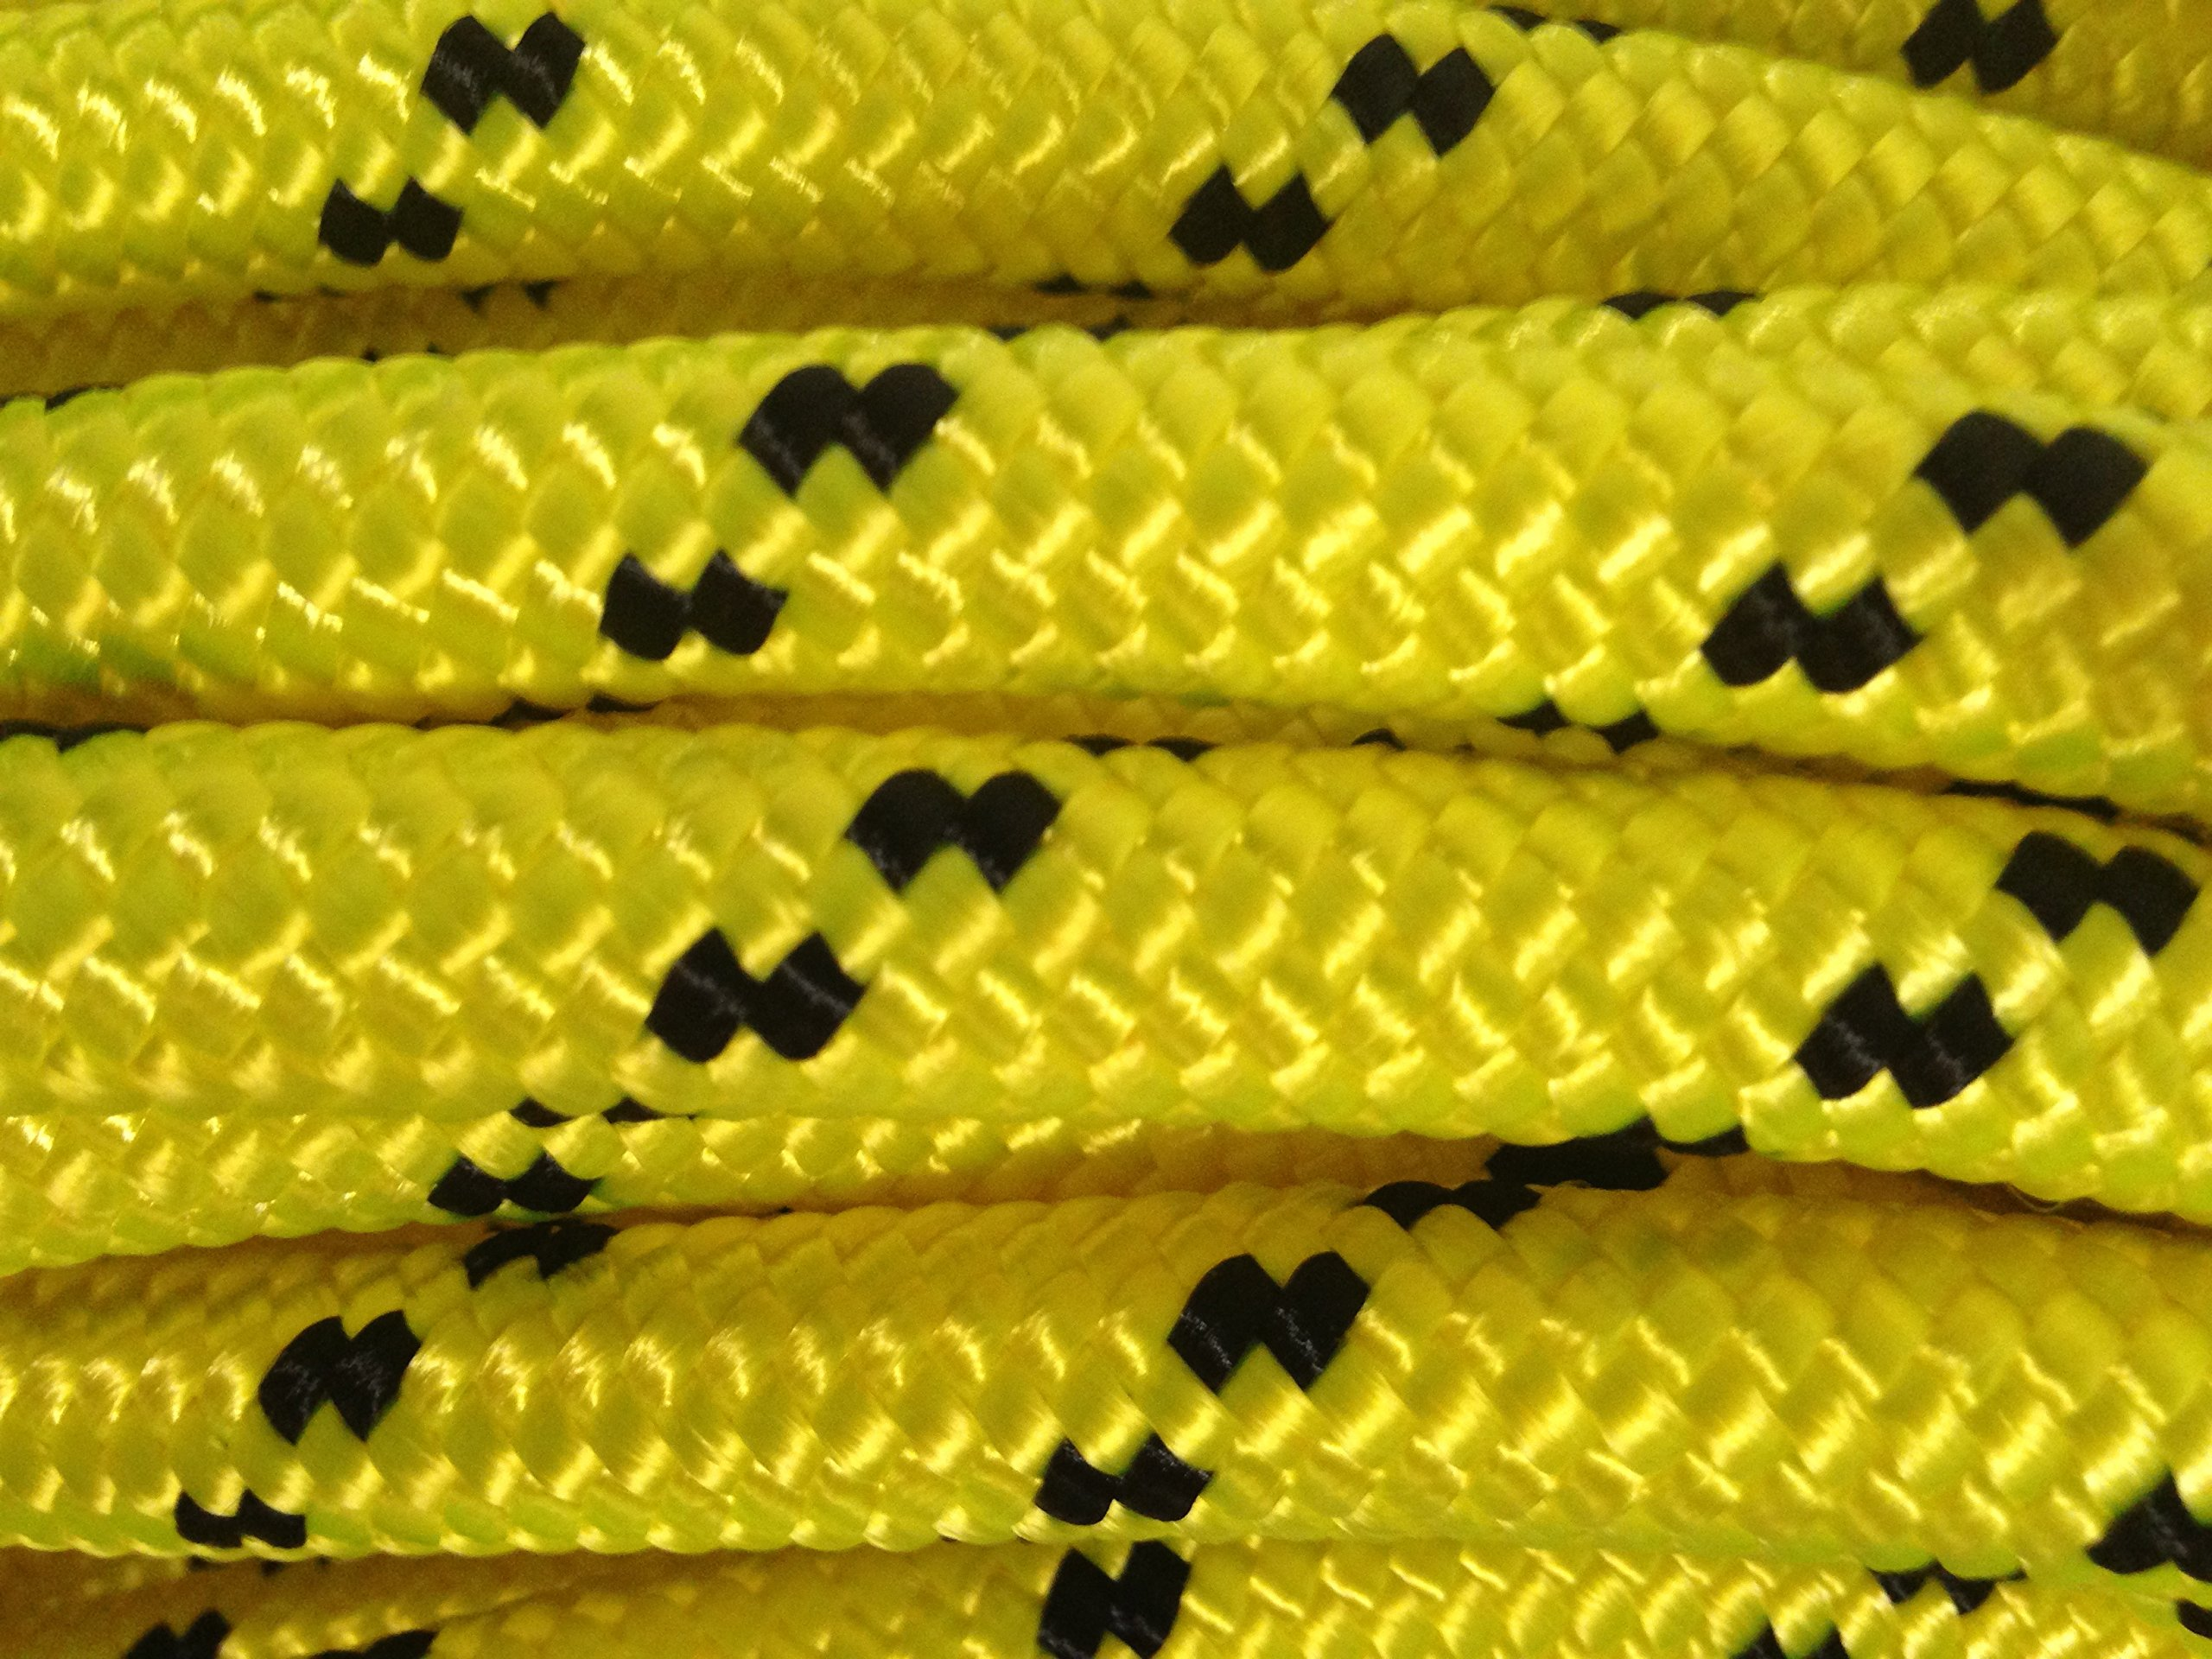 1/2'' X 200' Double Braided Polyester Arborist Tree Rope, Yellow